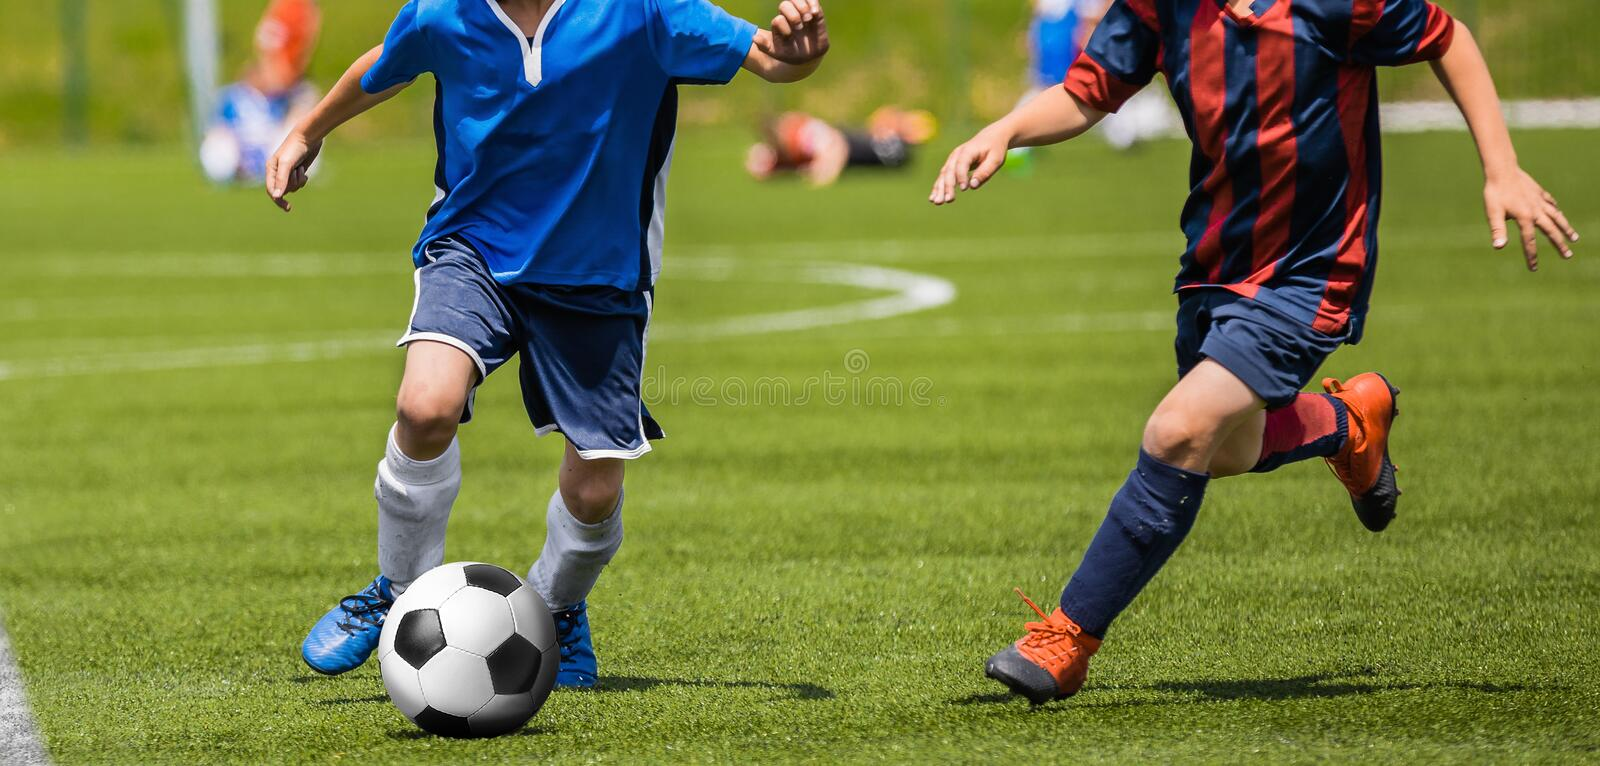 Football Soccer Match for Children. Kids Playing Soccer Game Tournament. Boys Running and Kicking Football. Youth Soccer Coach in the Background stock photo